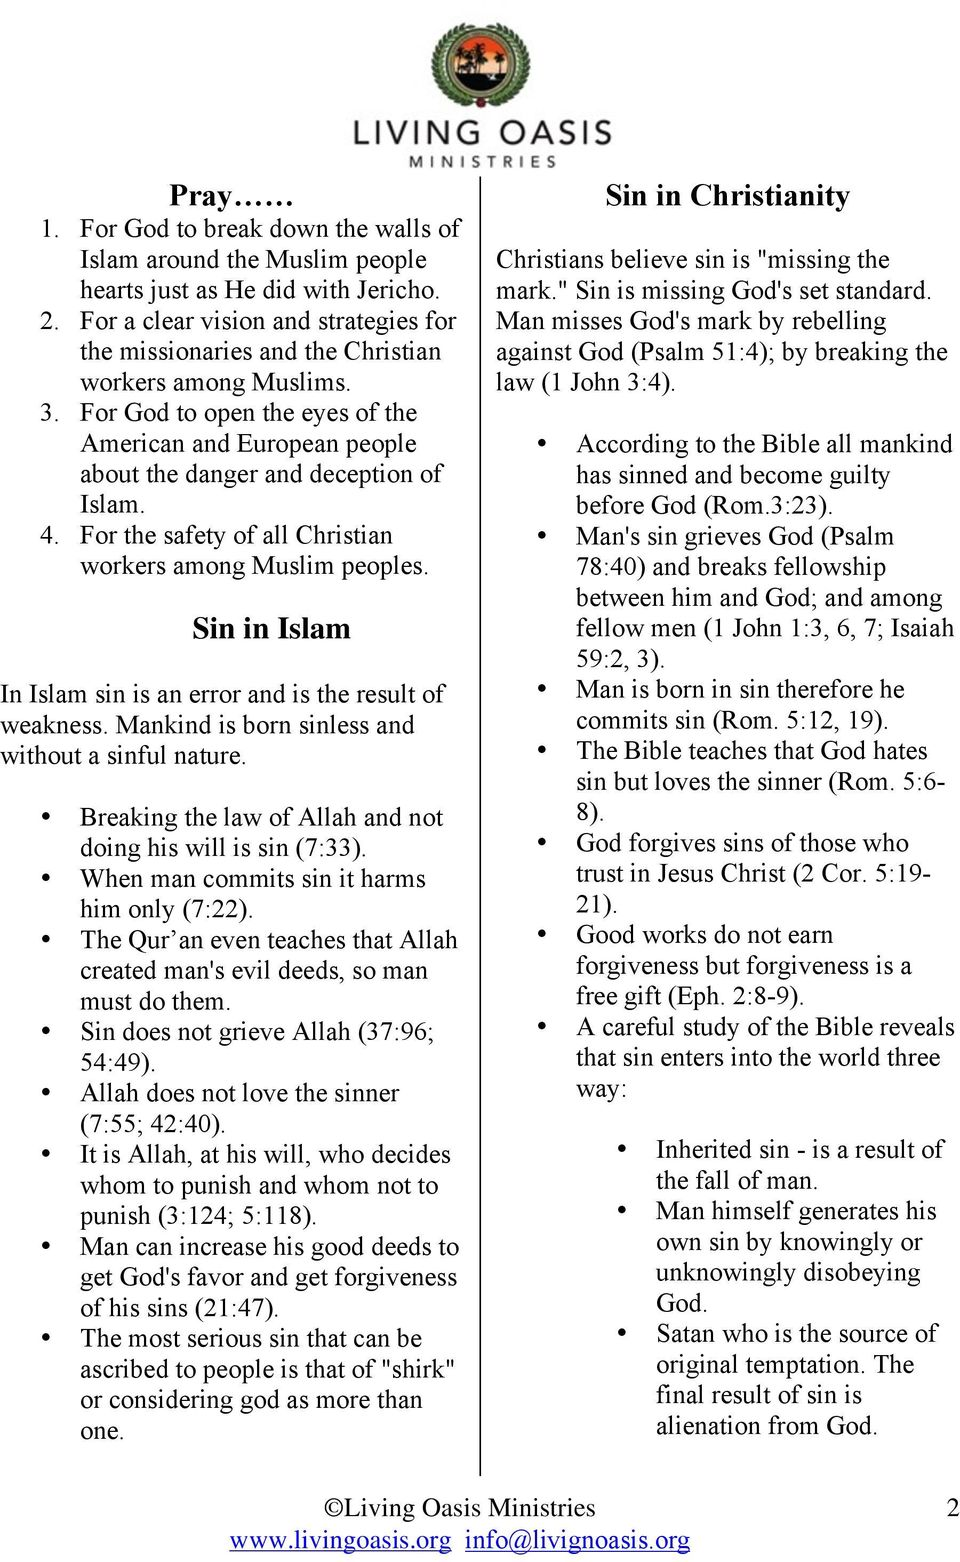 4. For the safety of all Christian workers among Muslim peoples. Sin in Islam In Islam sin is an error and is the result of weakness. Mankind is born sinless and without a sinful nature.